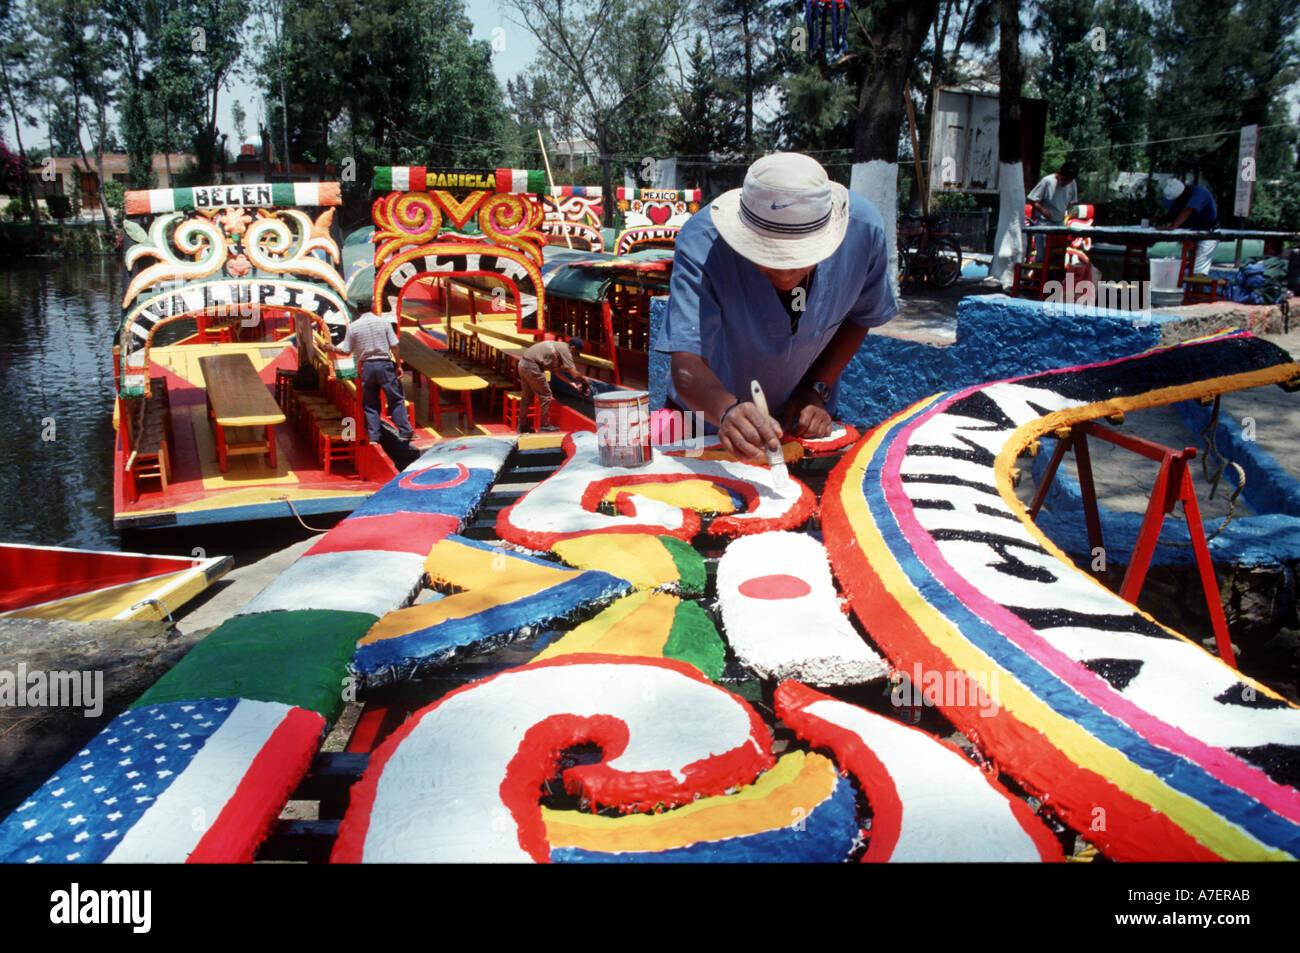 Mexico, Mexico City, North America. UNESCO patrimony site Xochimilco, features 'trinjeras' - brightly-painted gondolas. - Stock Image